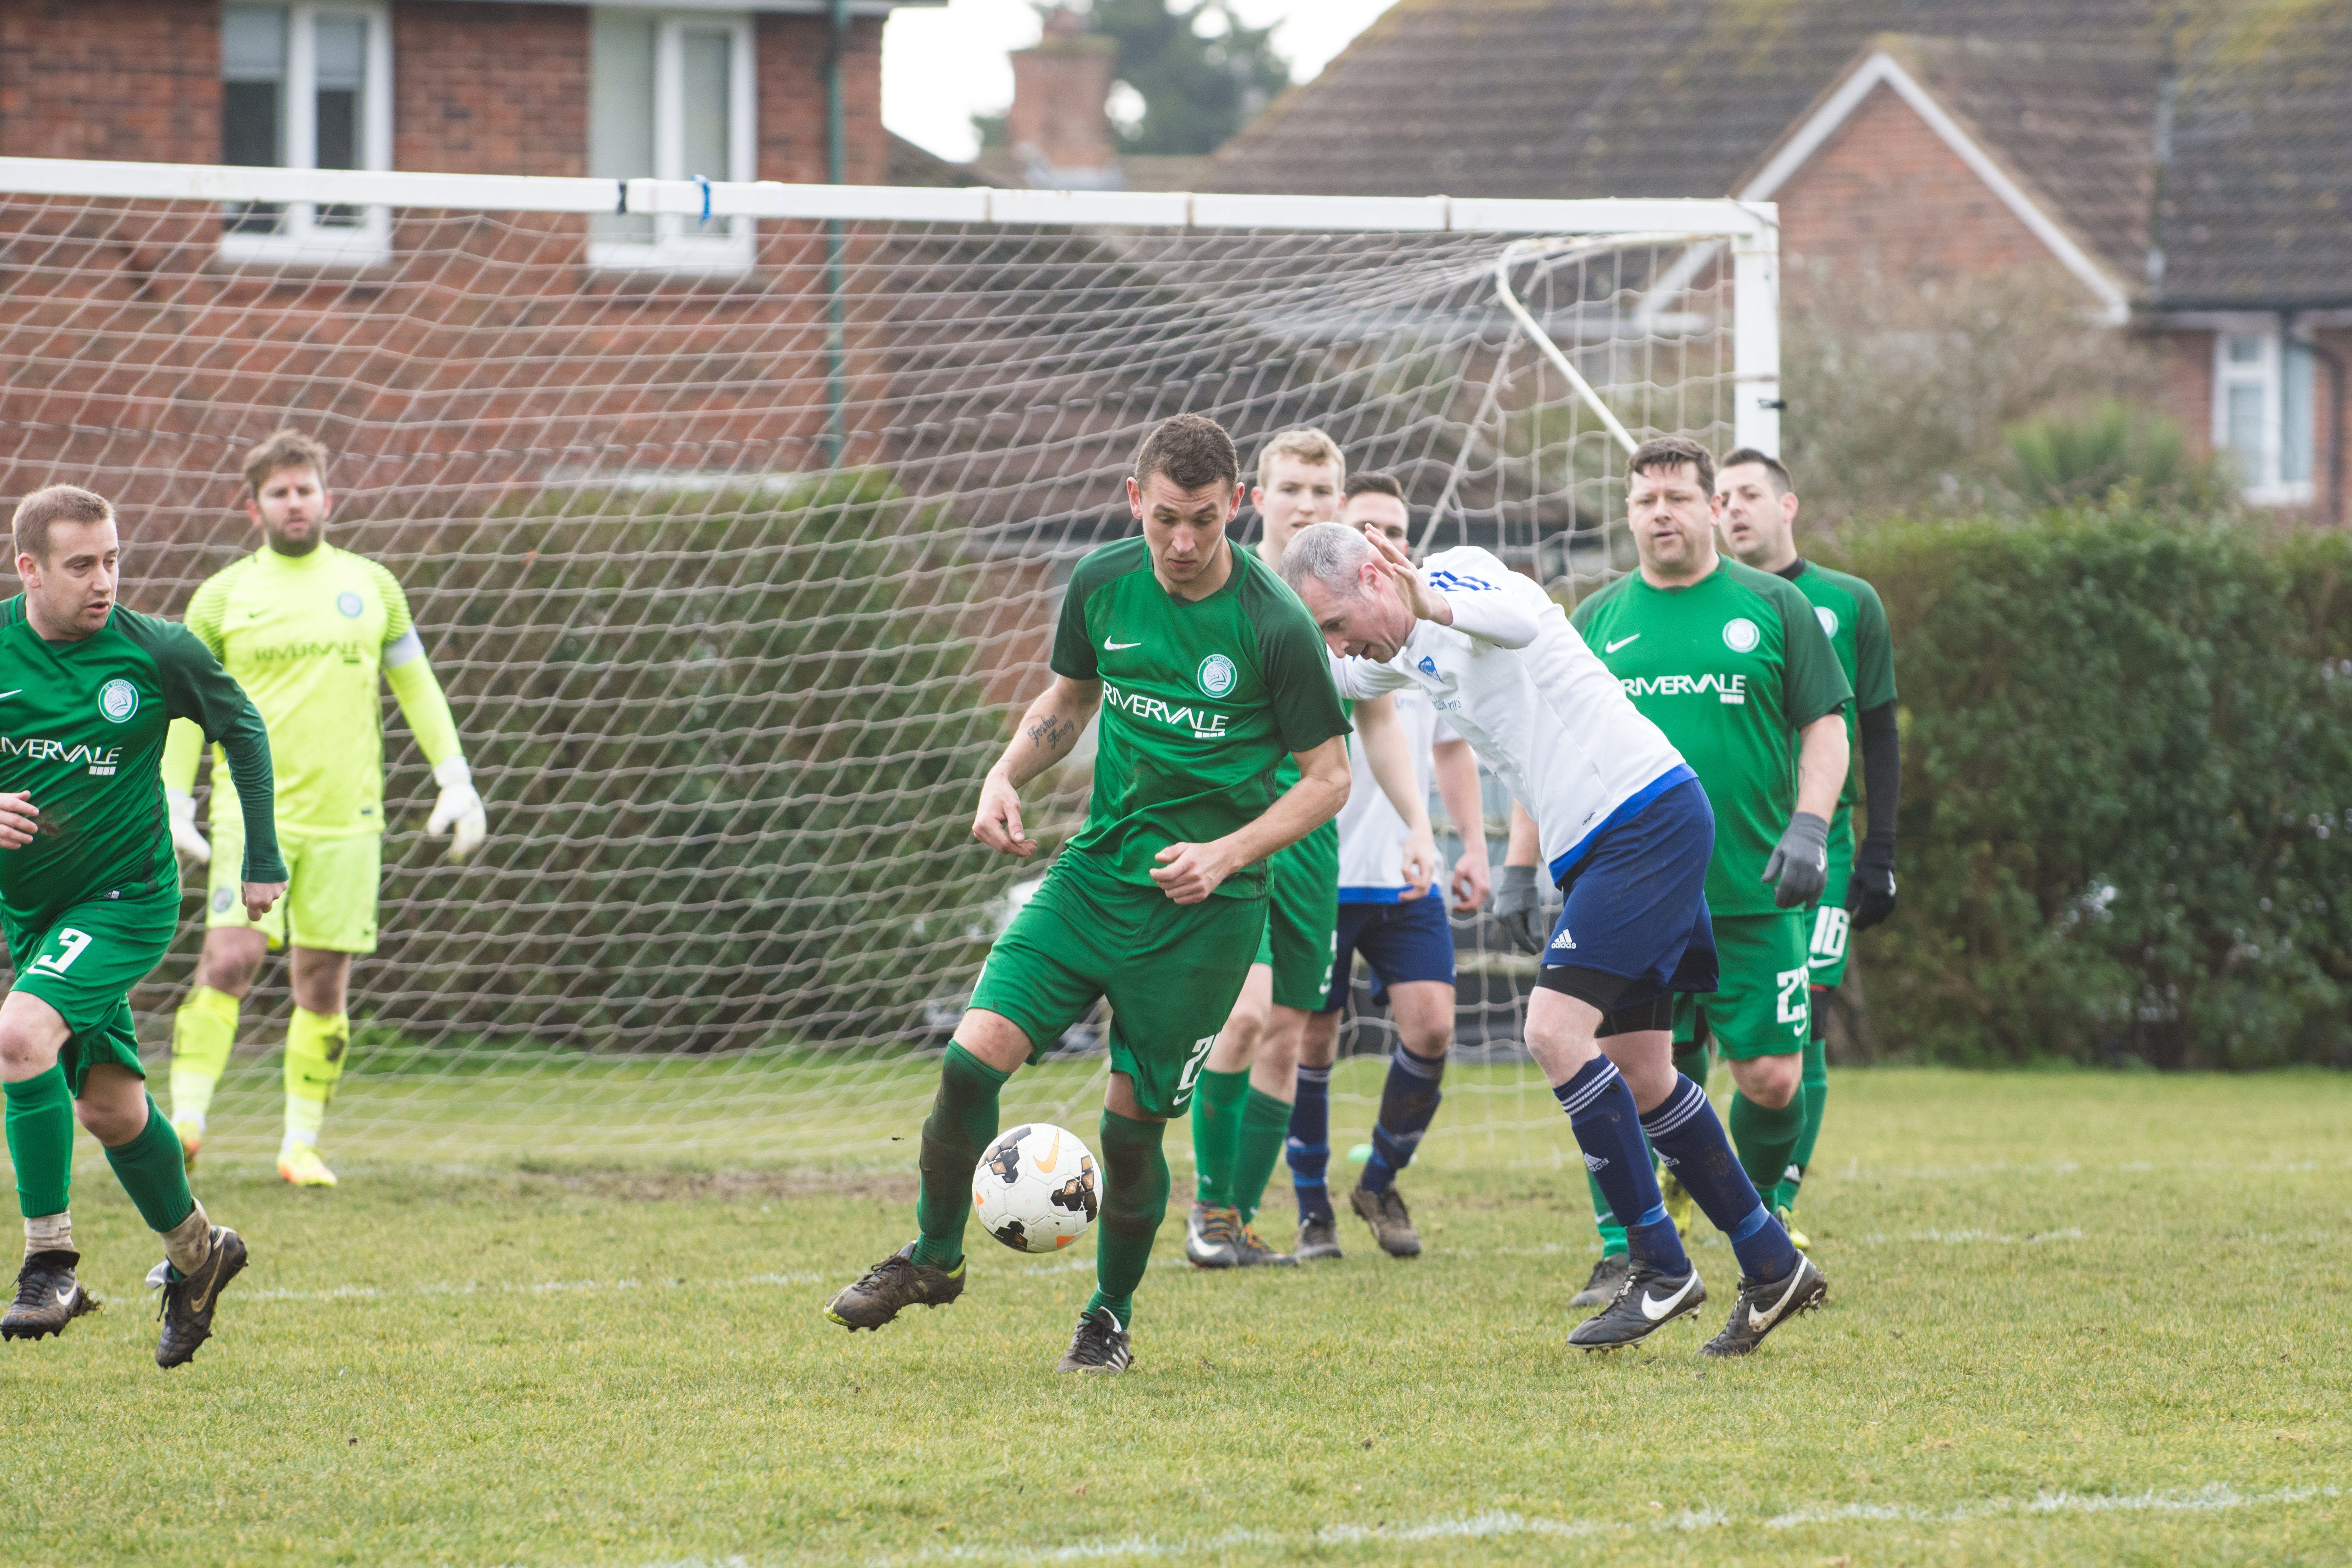 DAVID_JEFFERY FC Sporting vs Sompting 2nds 10.03.18 46